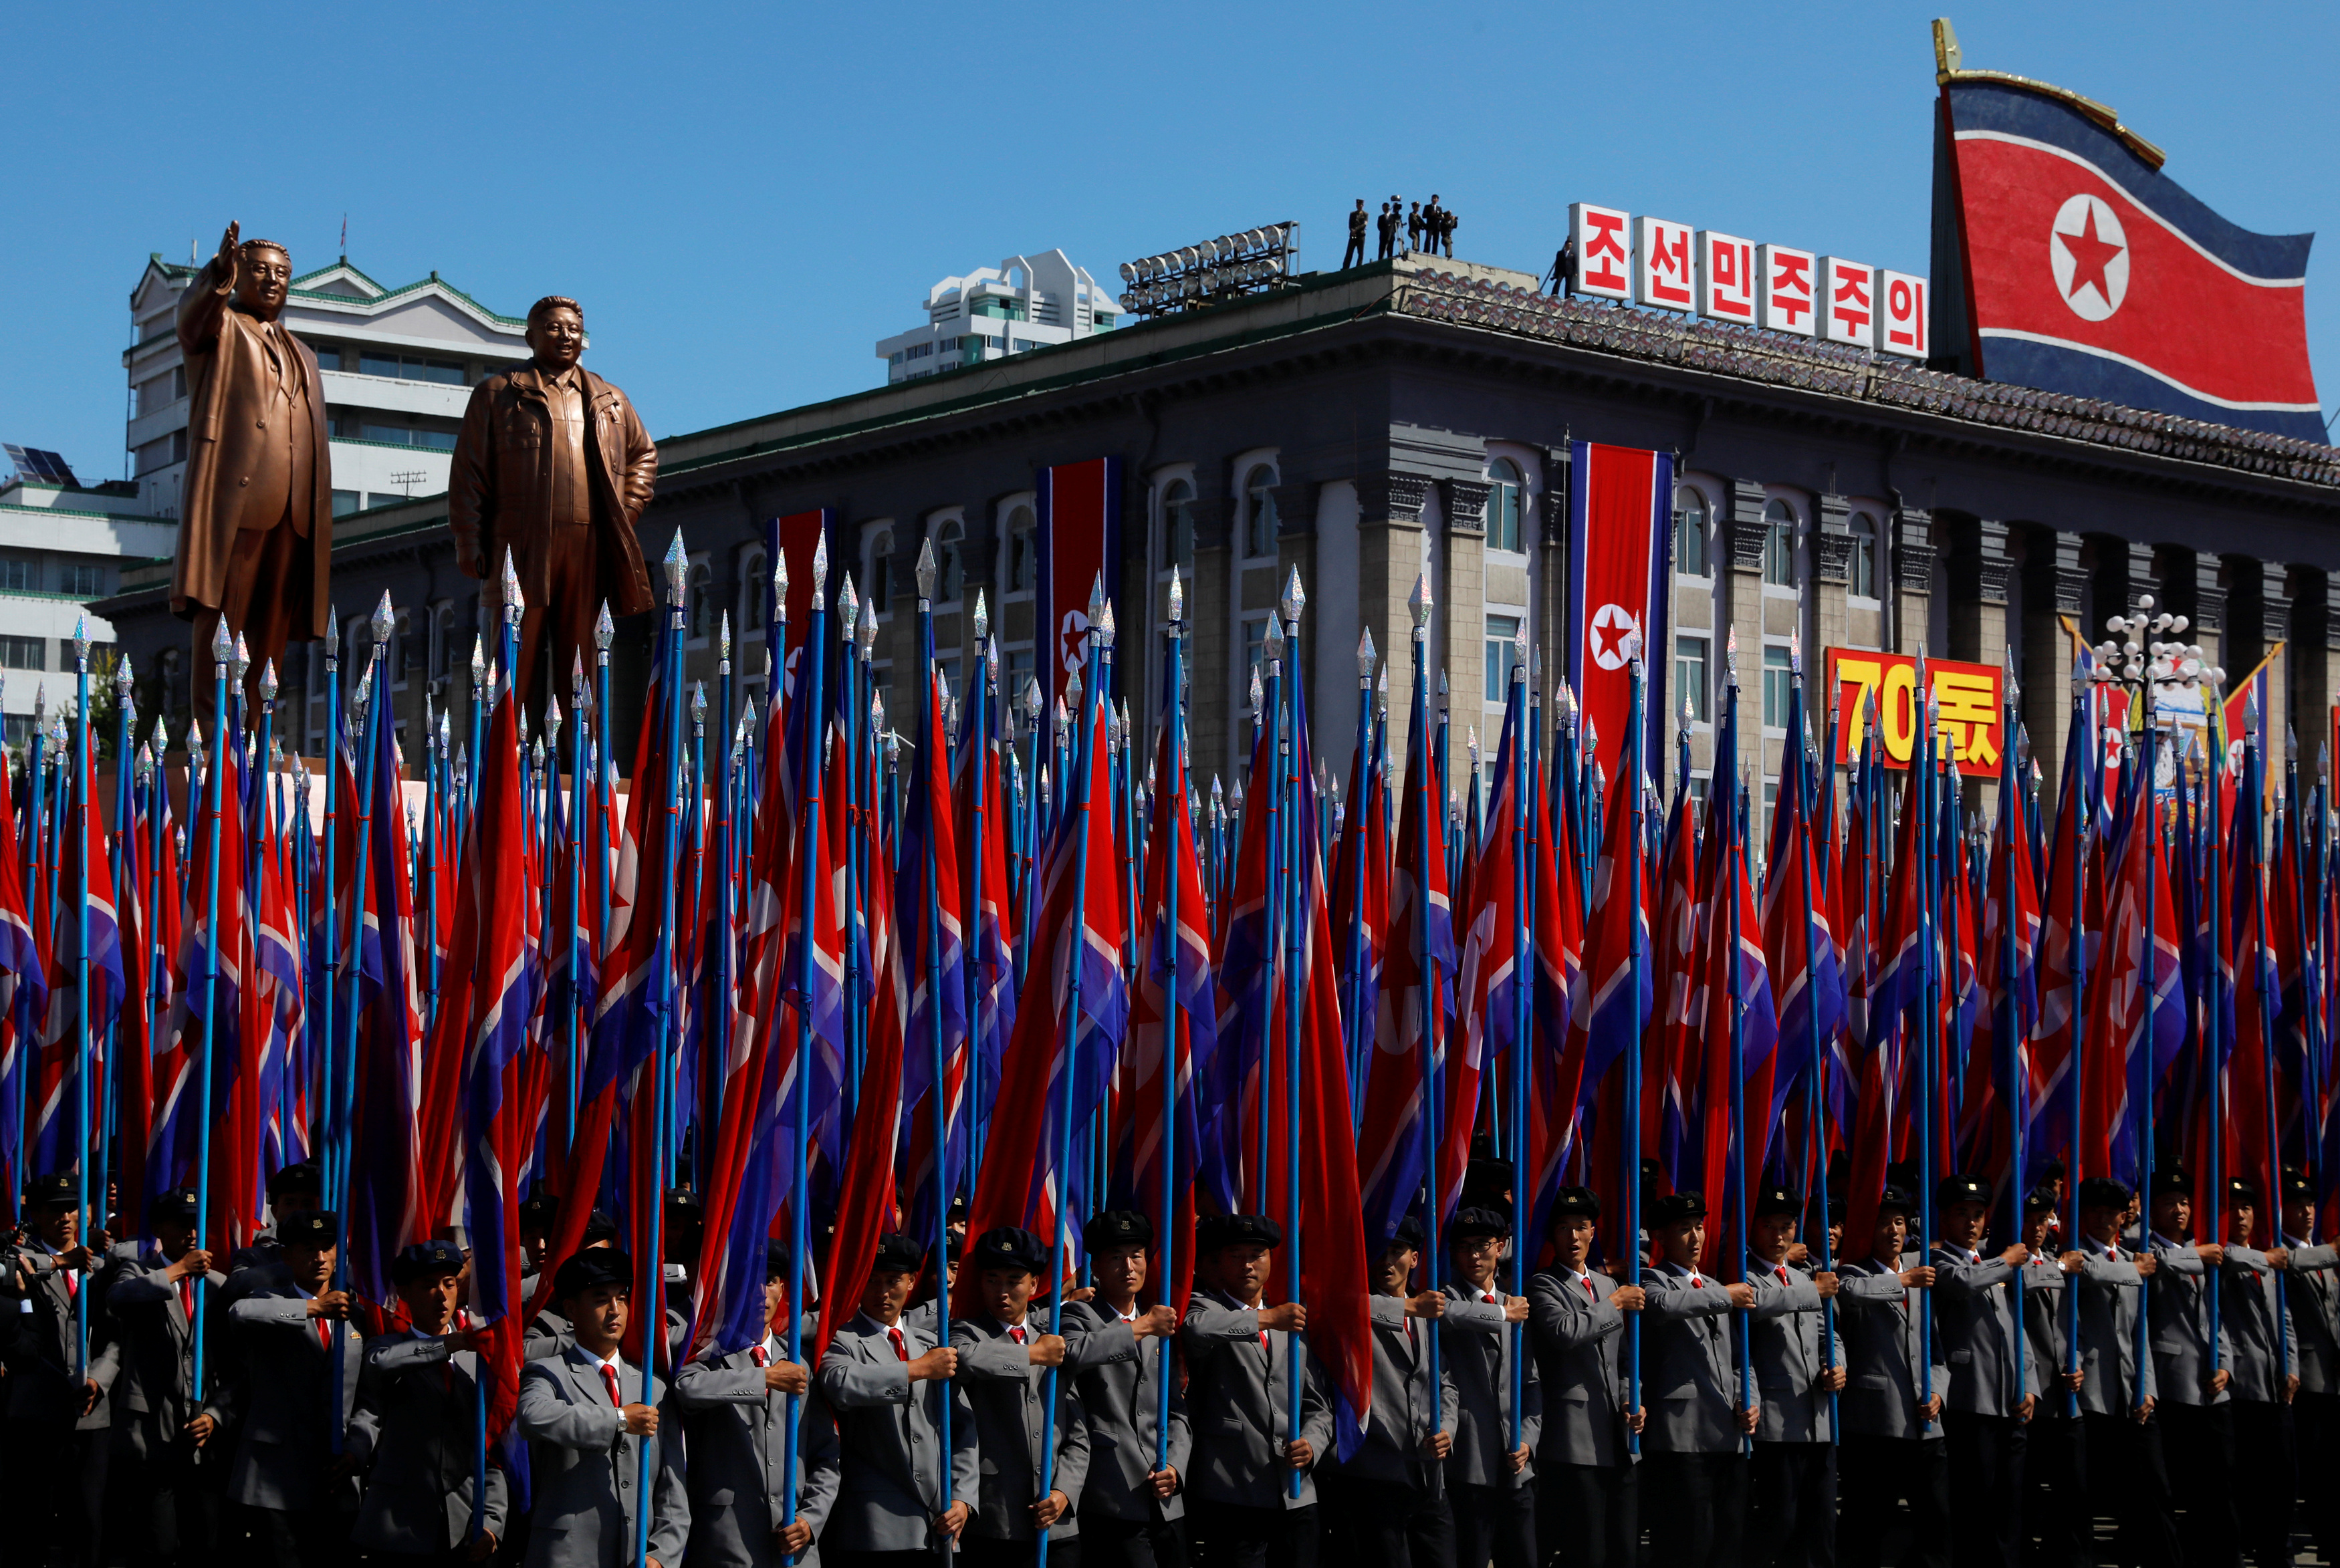 FILE PHOTO - People carry flags in front of statues of North Korea founder Kim Il Sung (L) and late leader Kim Jong Il during a military parade marking the 70th anniversary of North Korea's foundation in Pyongyang, North Korea, September 9, 2018. REUTERS/Danish Siddiqui